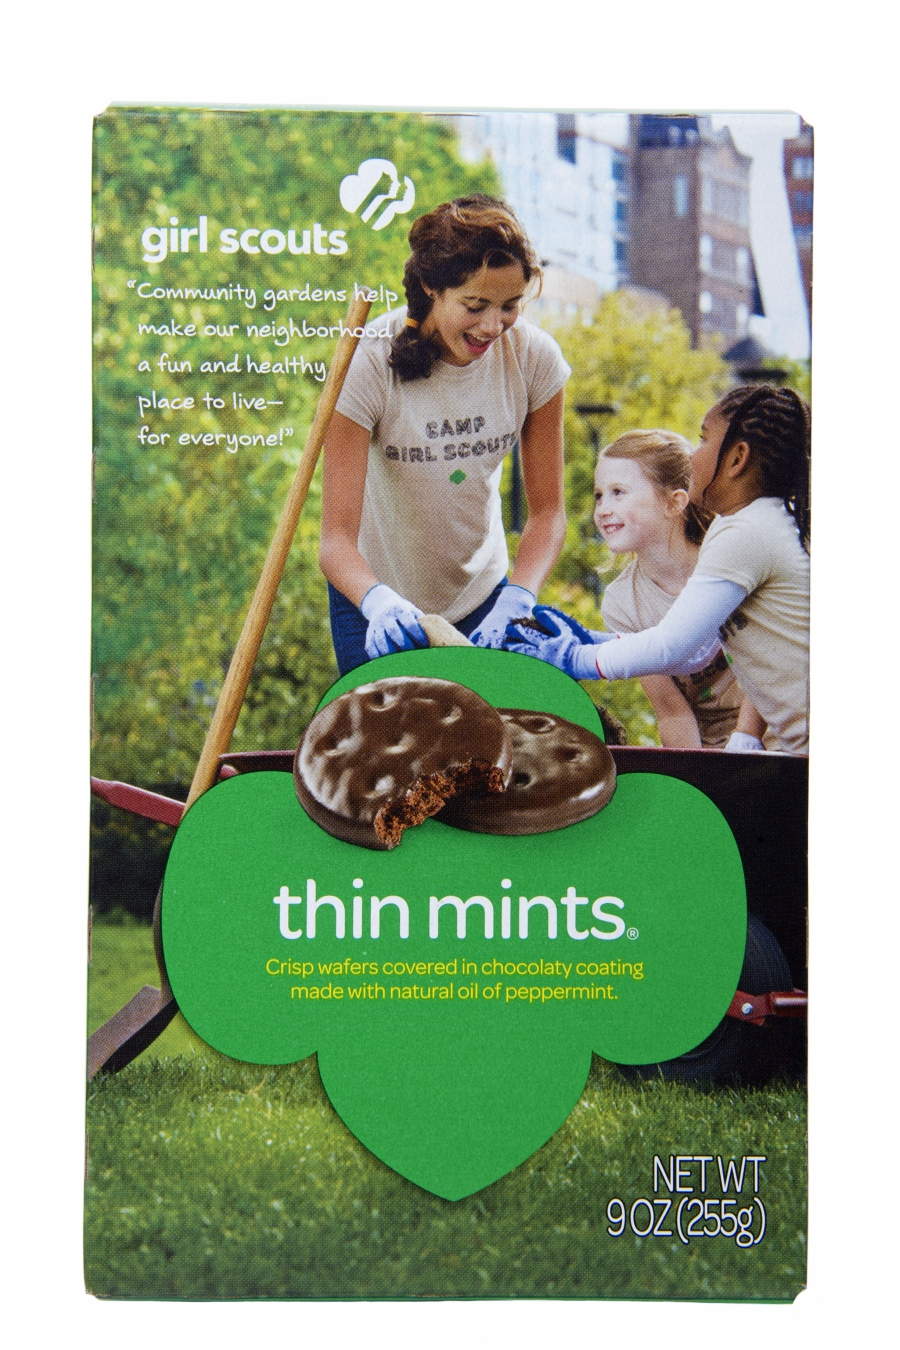 fun facts about girl scout cookies